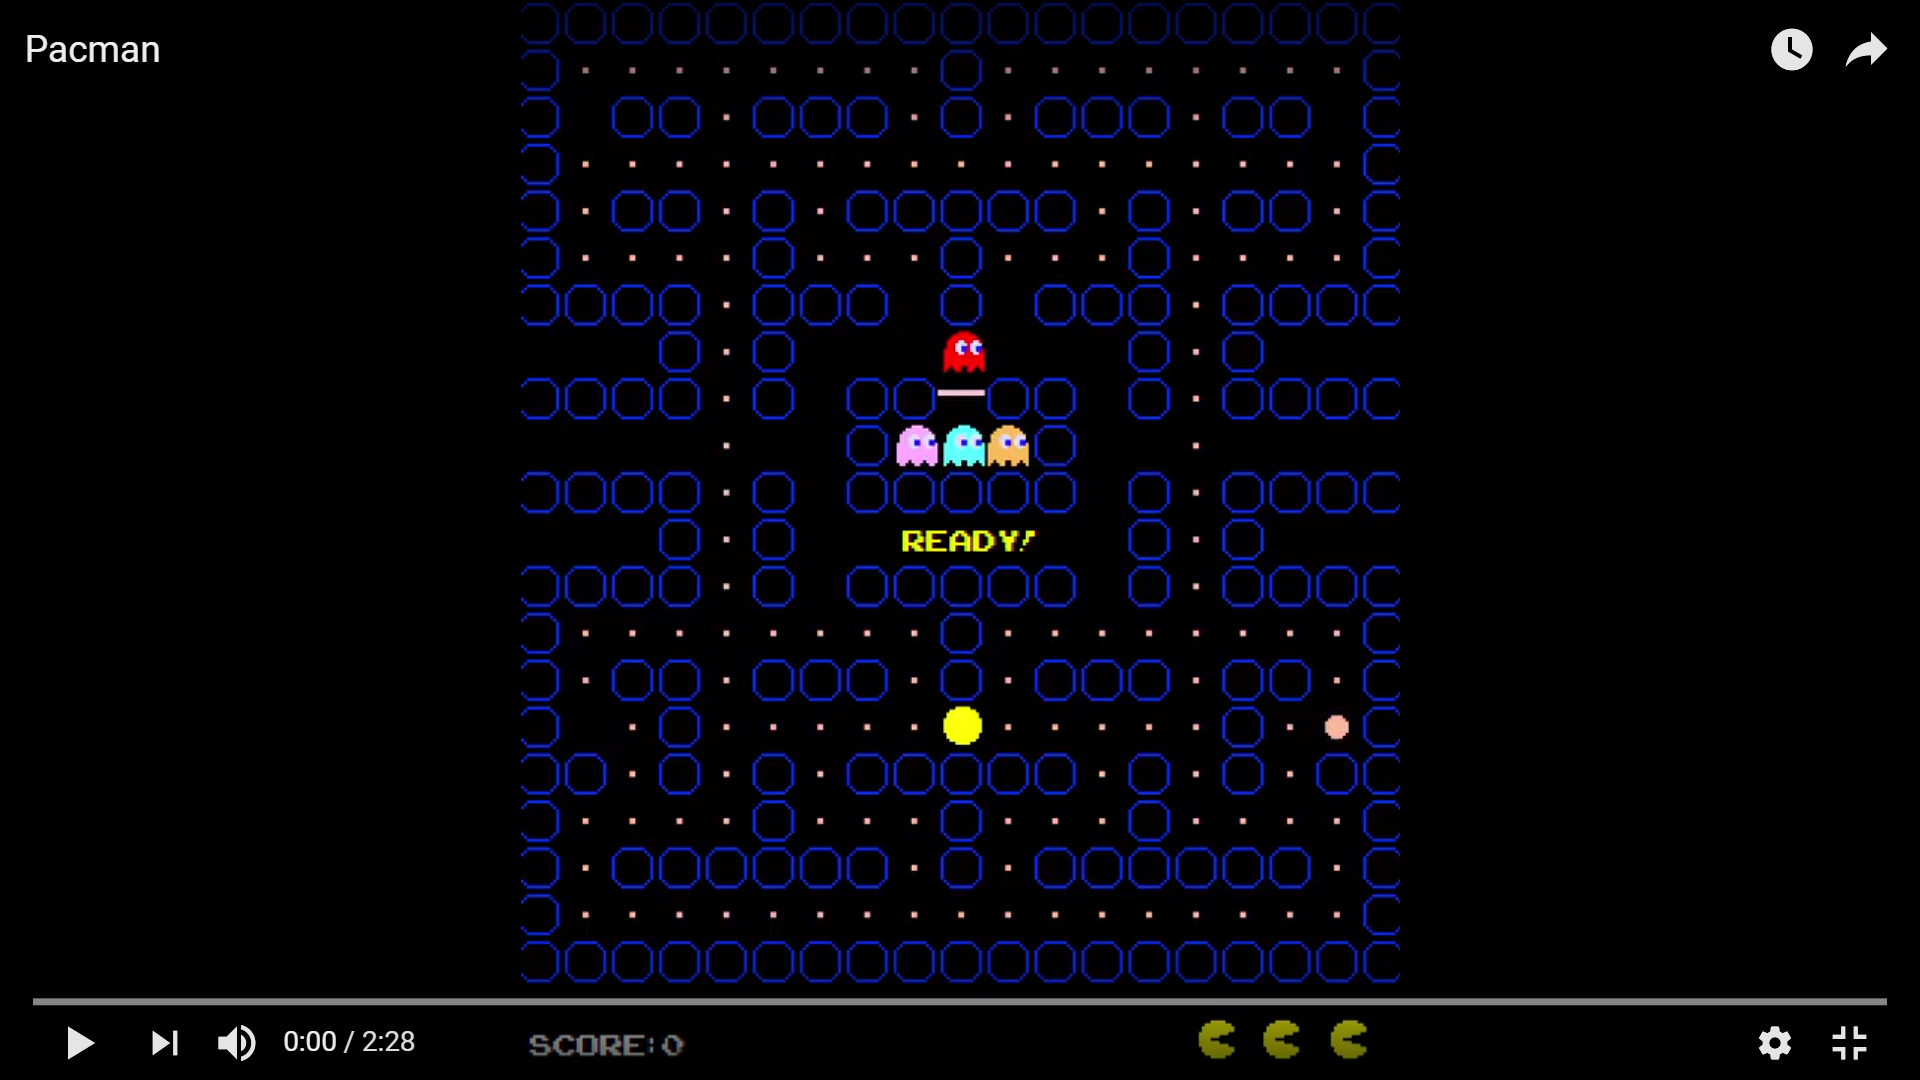 Screenshot from the gameplay video of Pacman